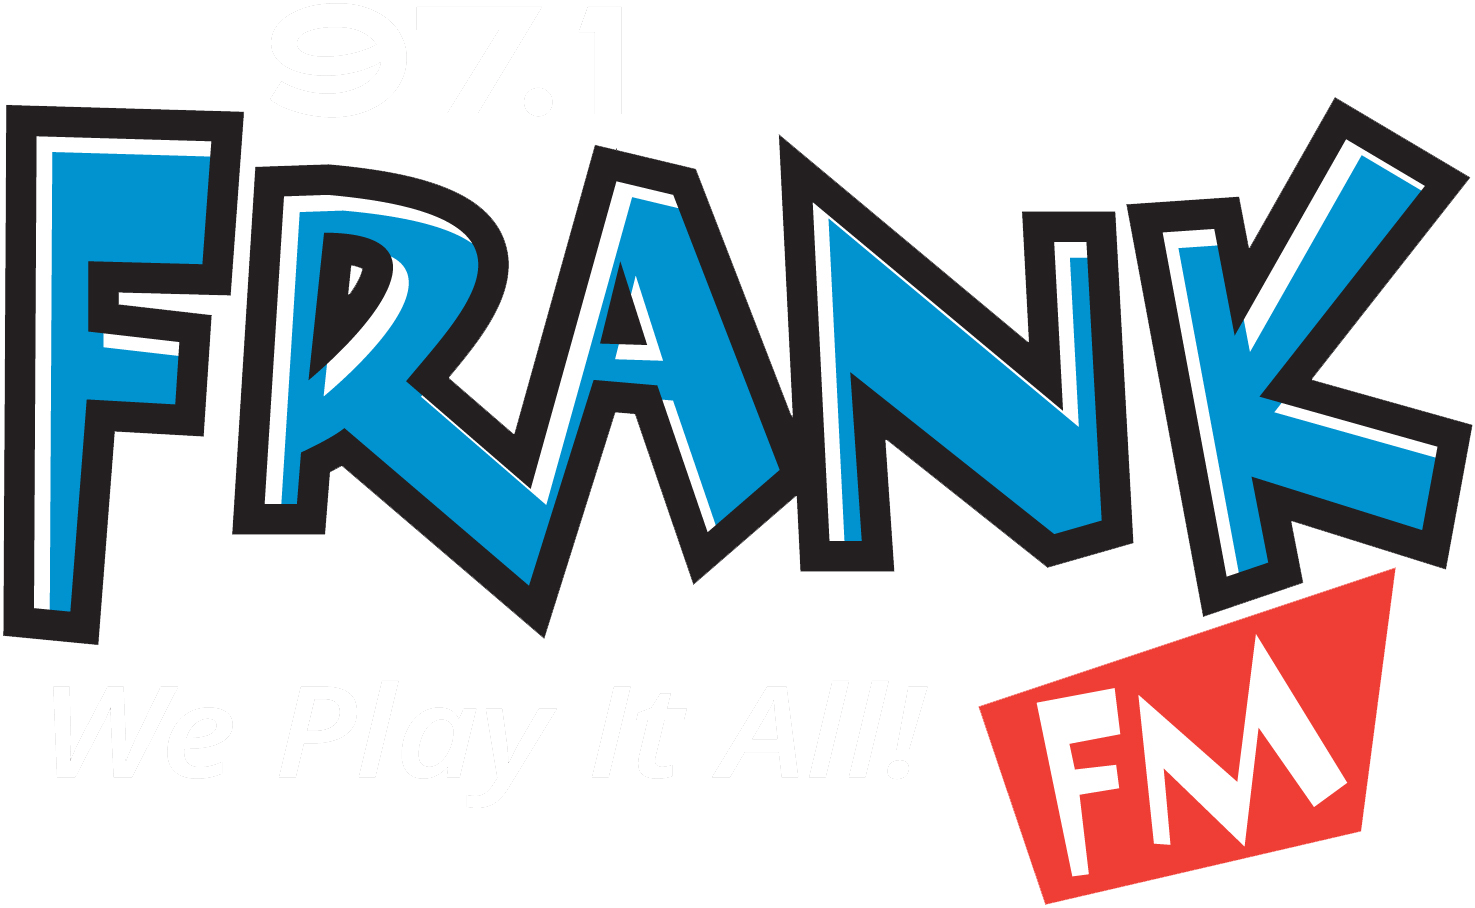 white_FRANK97.1LOGOnew_transparent_bg